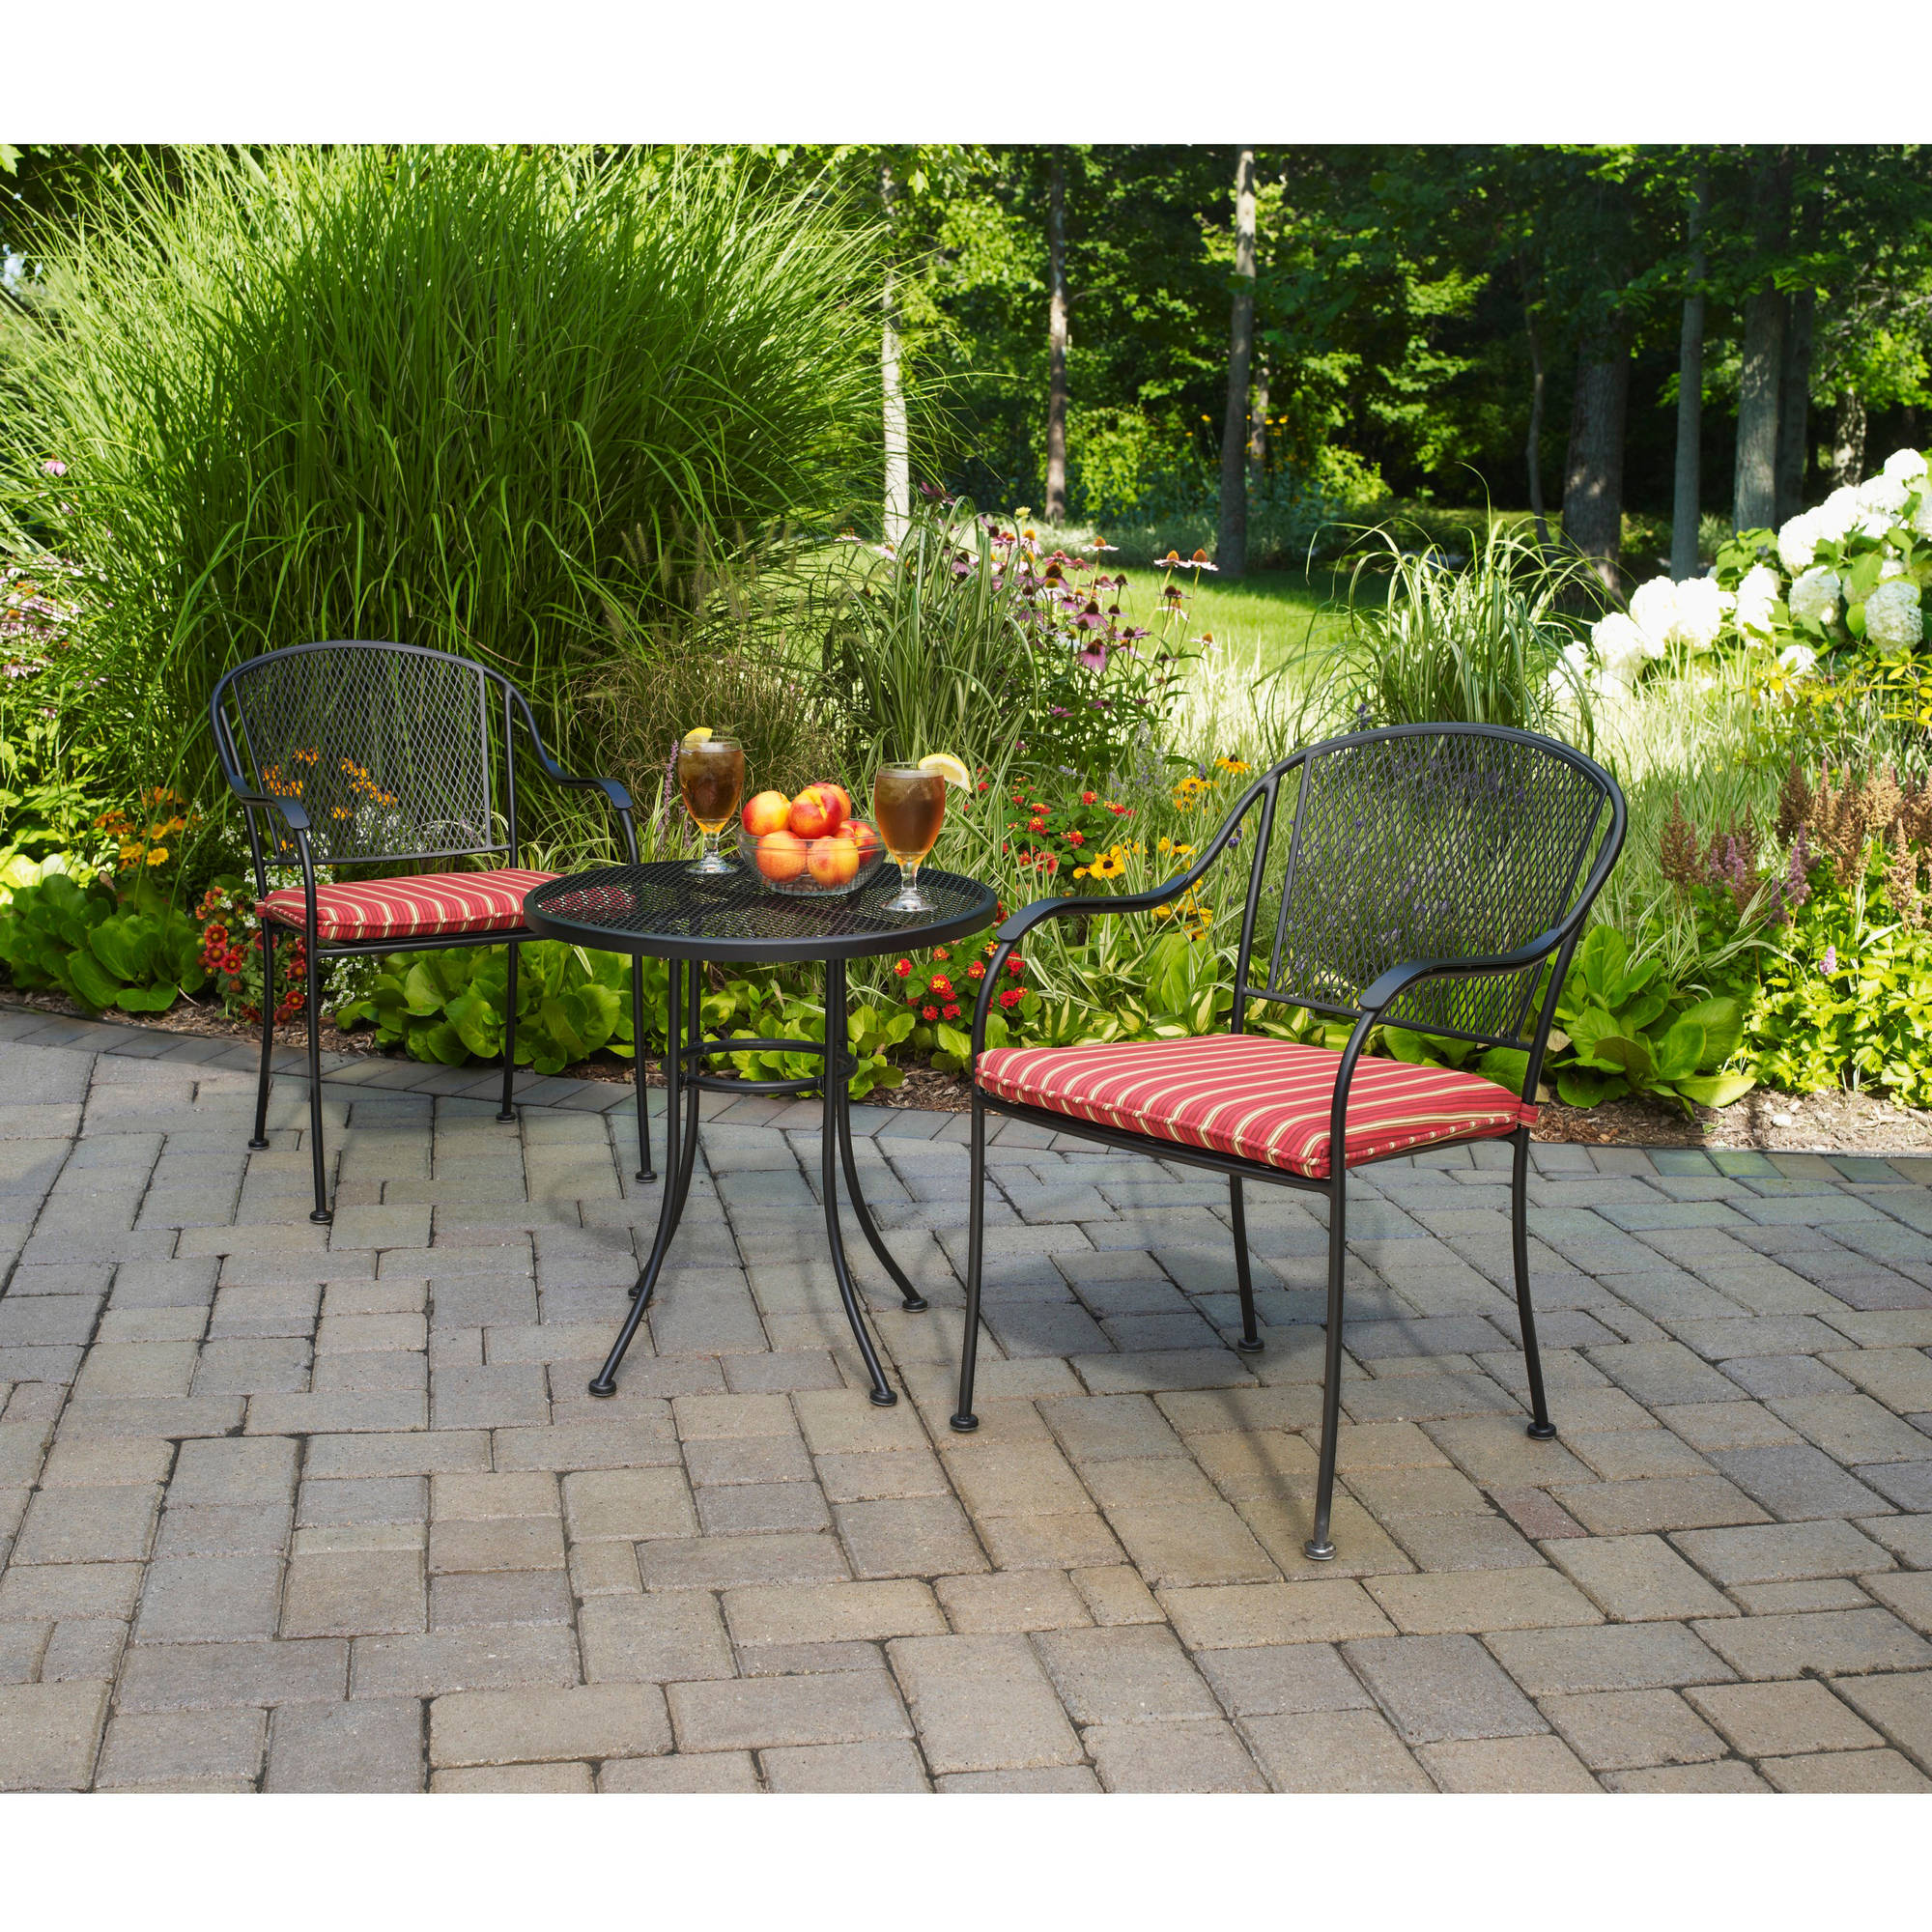 Iron Garden Table And Chairs Part - 47: Elegant Mainstays Wrought Iron 3 Piece Outdoor Bistro Set, Seats 2